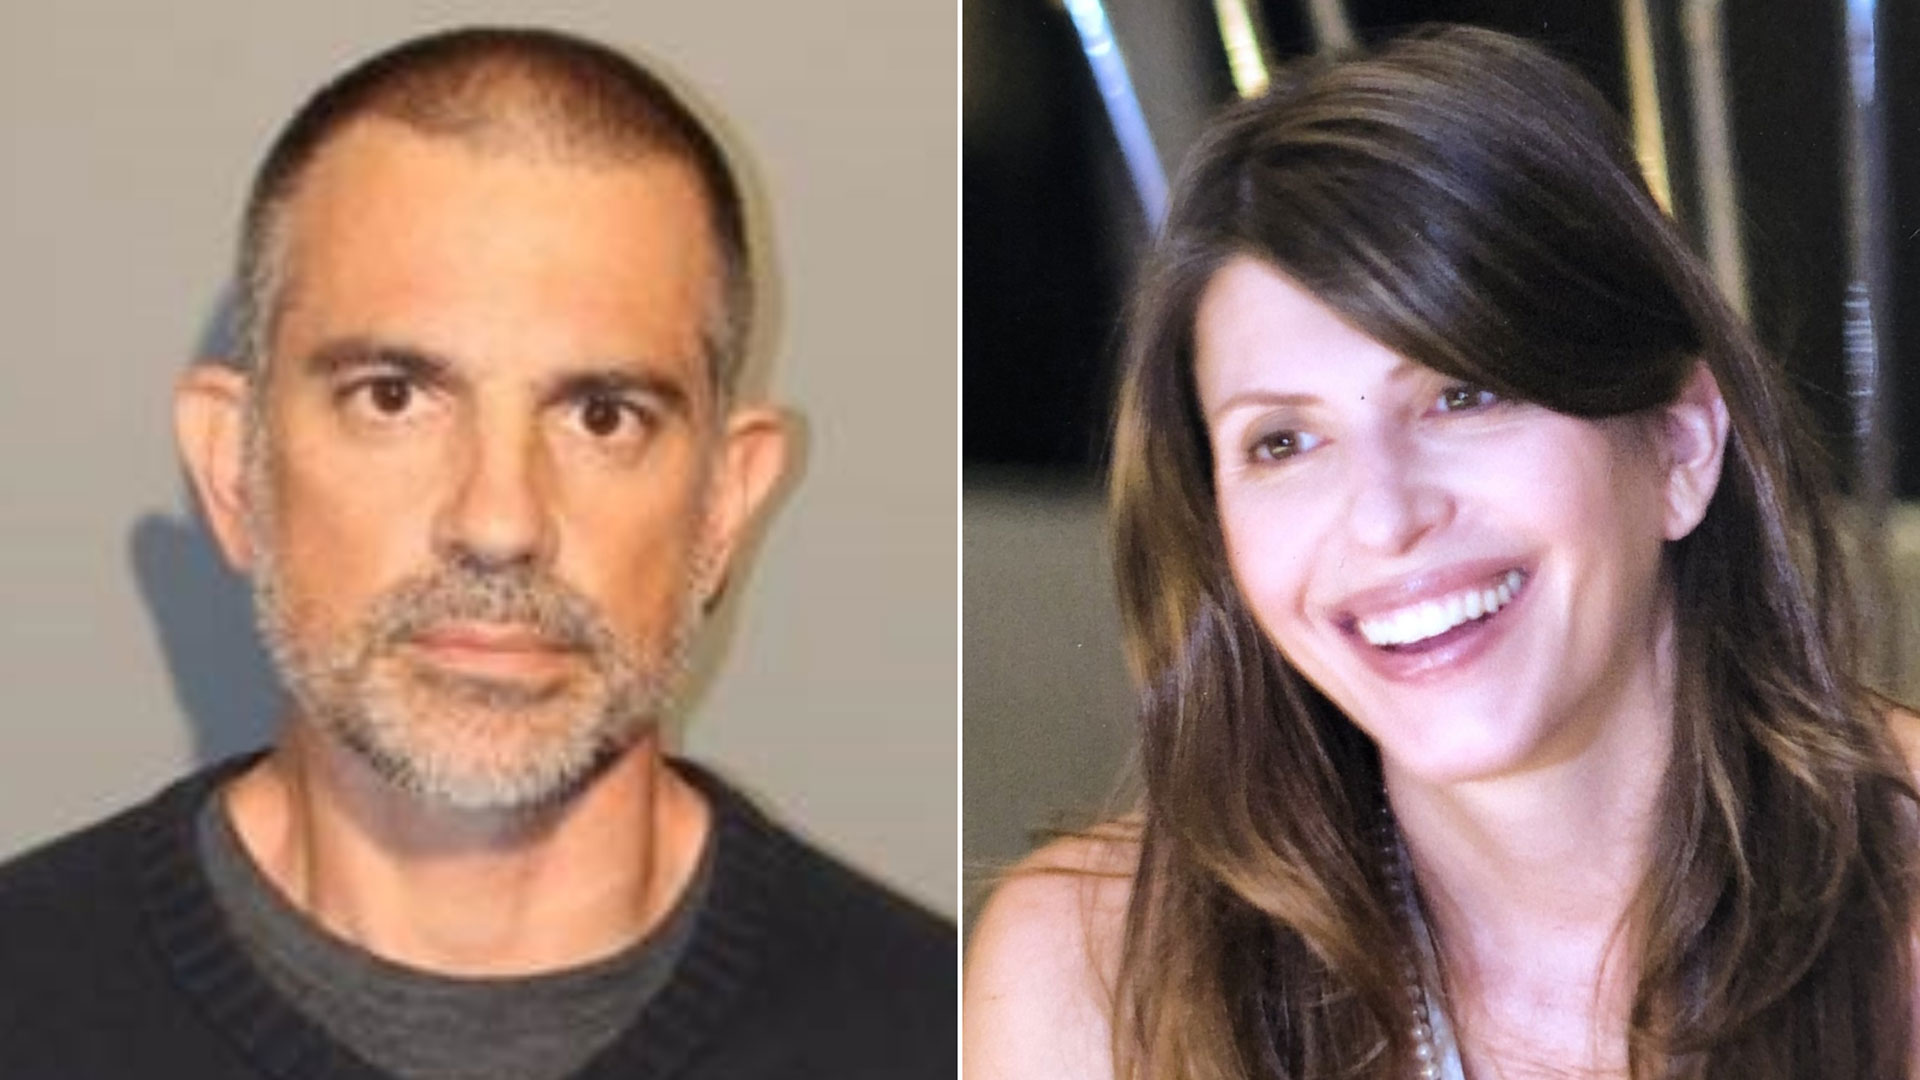 Fotis Dulos and Jennifer Farber Dulos